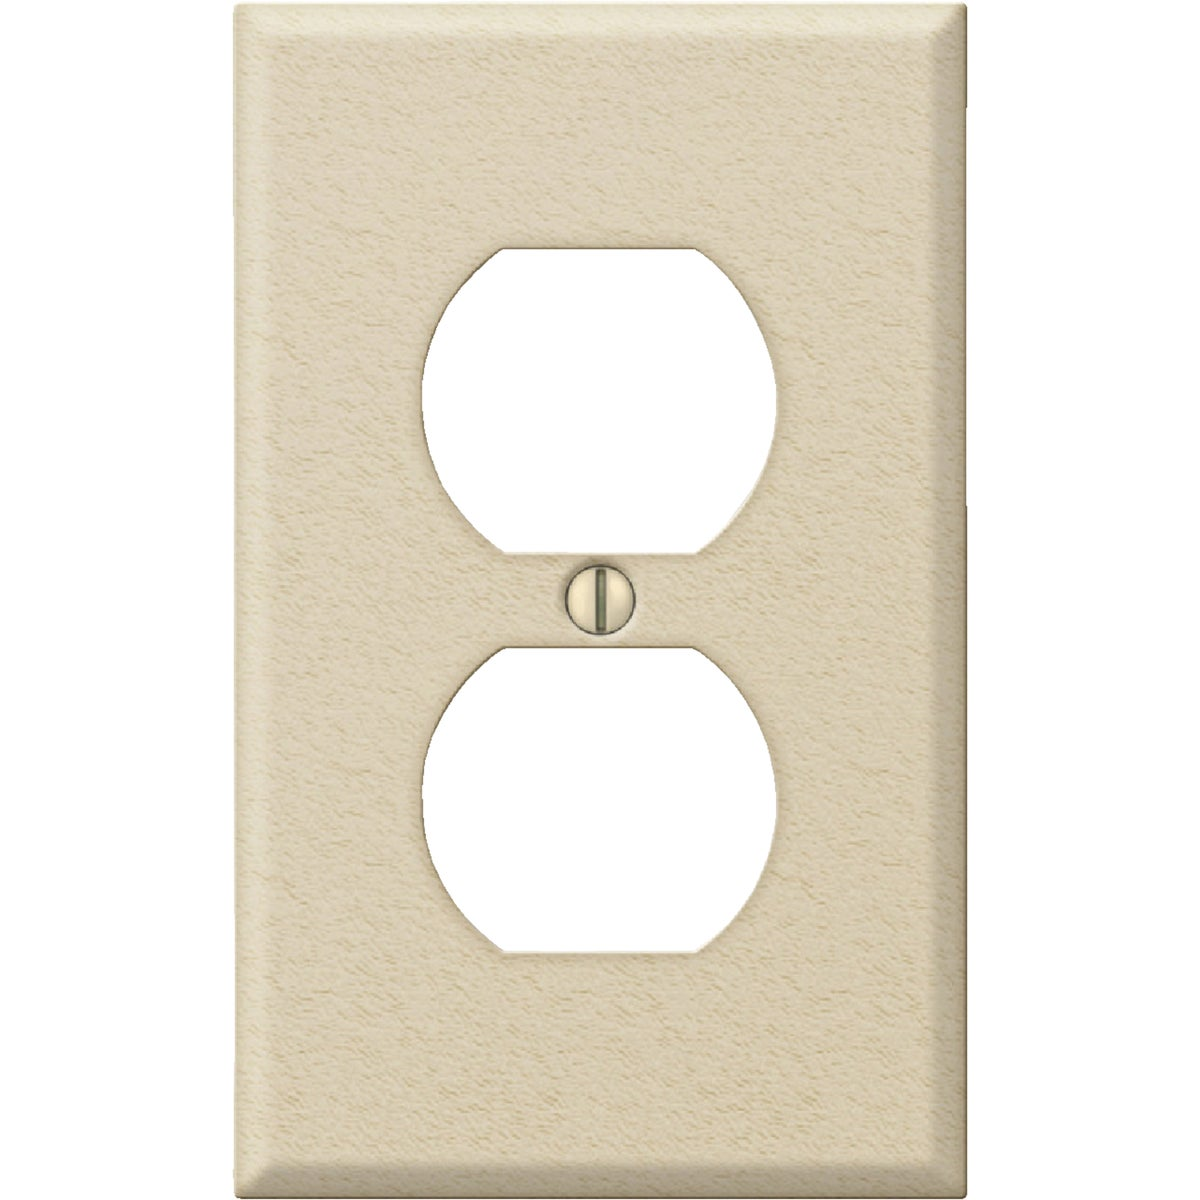 IV OUTLET WALL PLATE